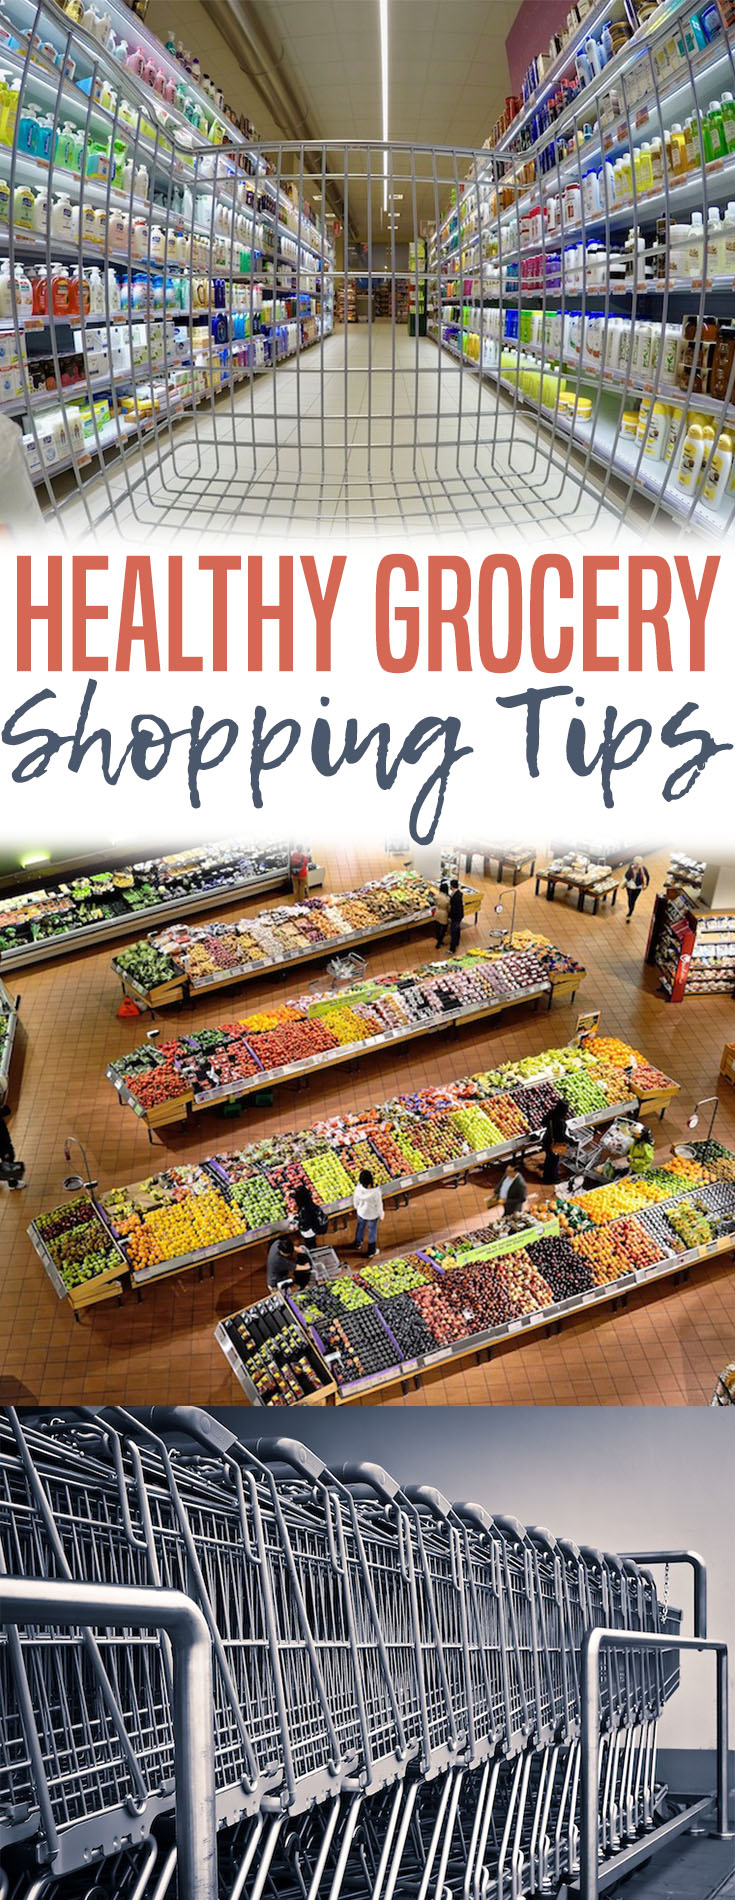 In this blog post we'll be discussing the psychology behind how the grocery store encourages unhealthy eating and some healthy grocery shopping tips.